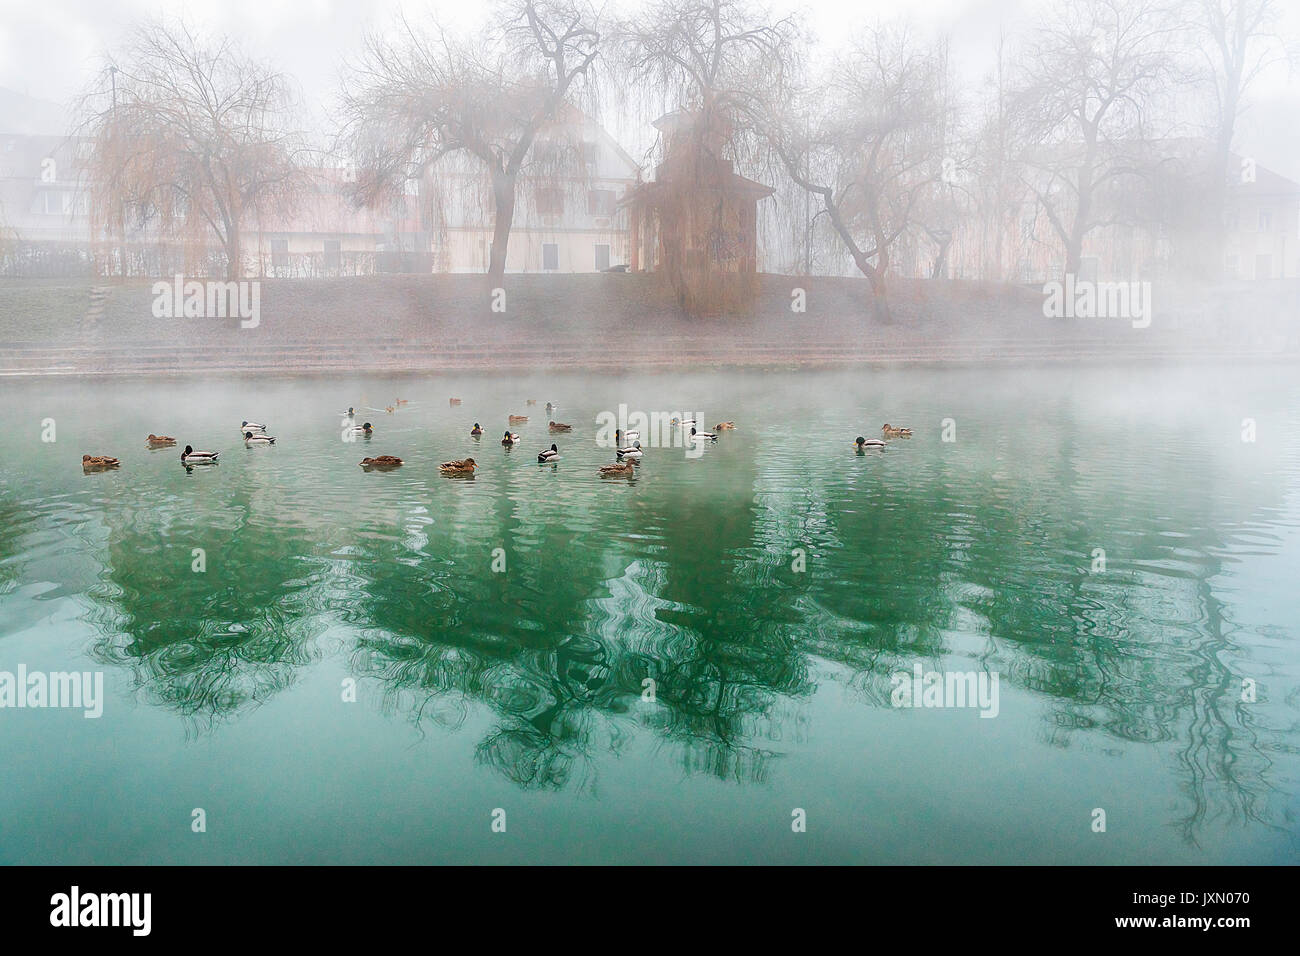 A group of wild ducks sitting on the river Ljubljanica, that crosses the capital of Slovenia, Ljubljana and has an amazing green color. - Stock Image